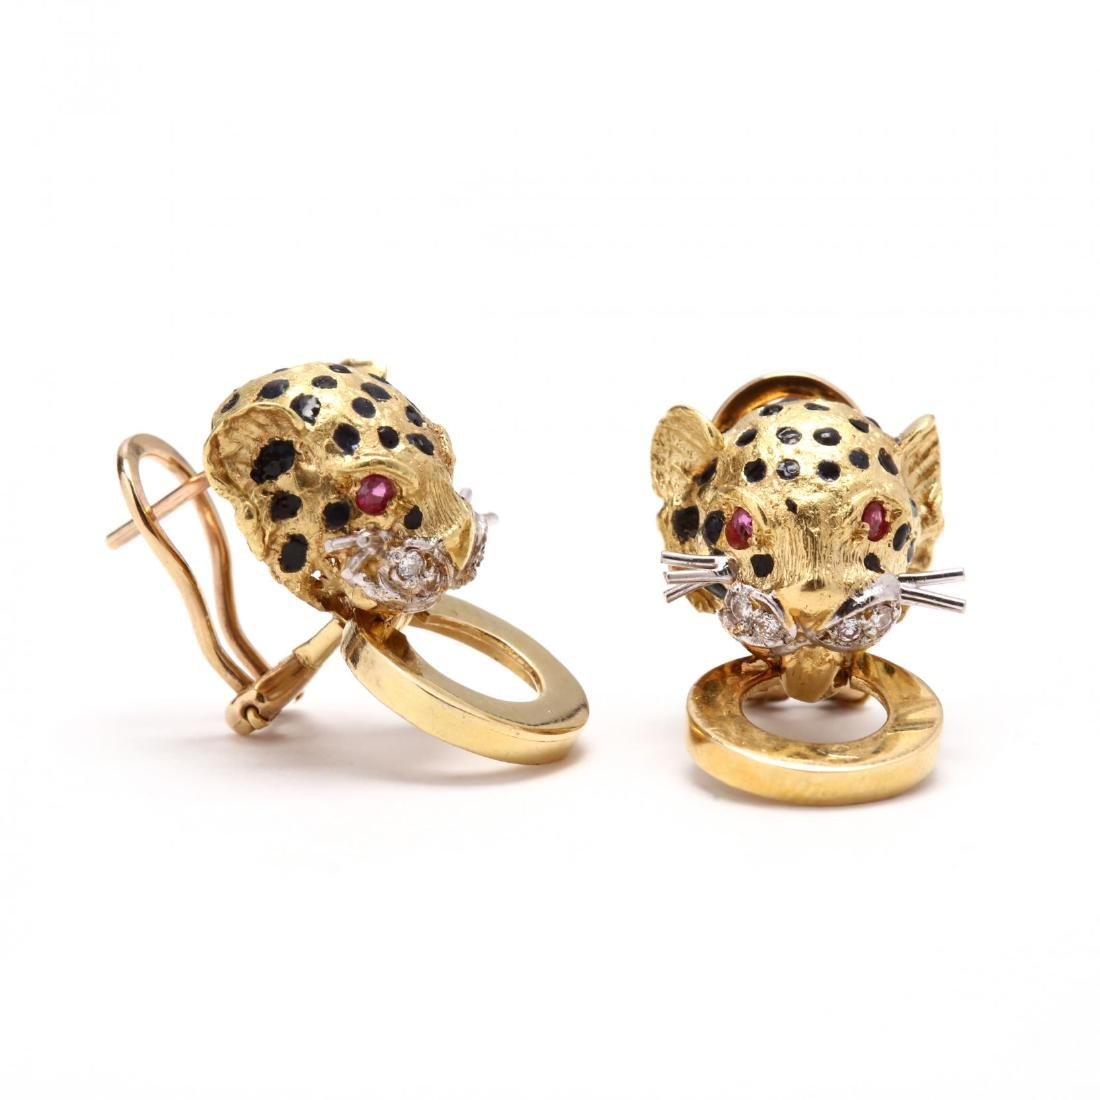 18KT Gold, Enamel, and Gem Set Cheetah Earrings and - 3